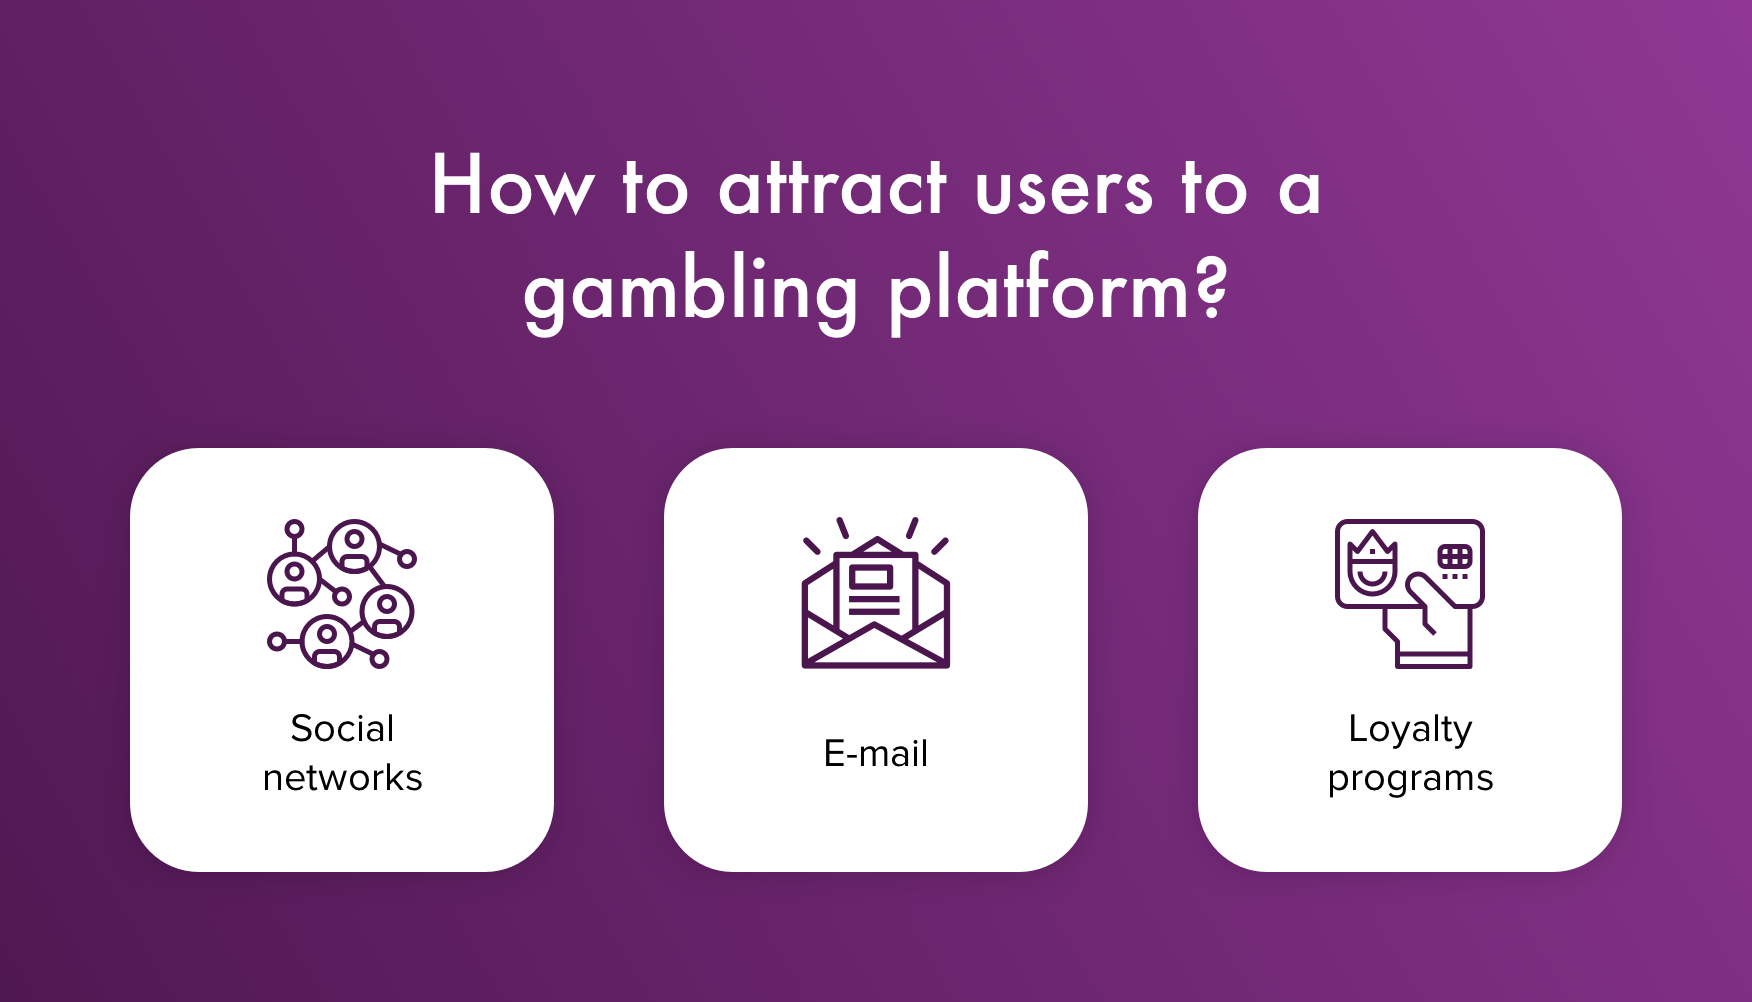 How to attract users to an online casino